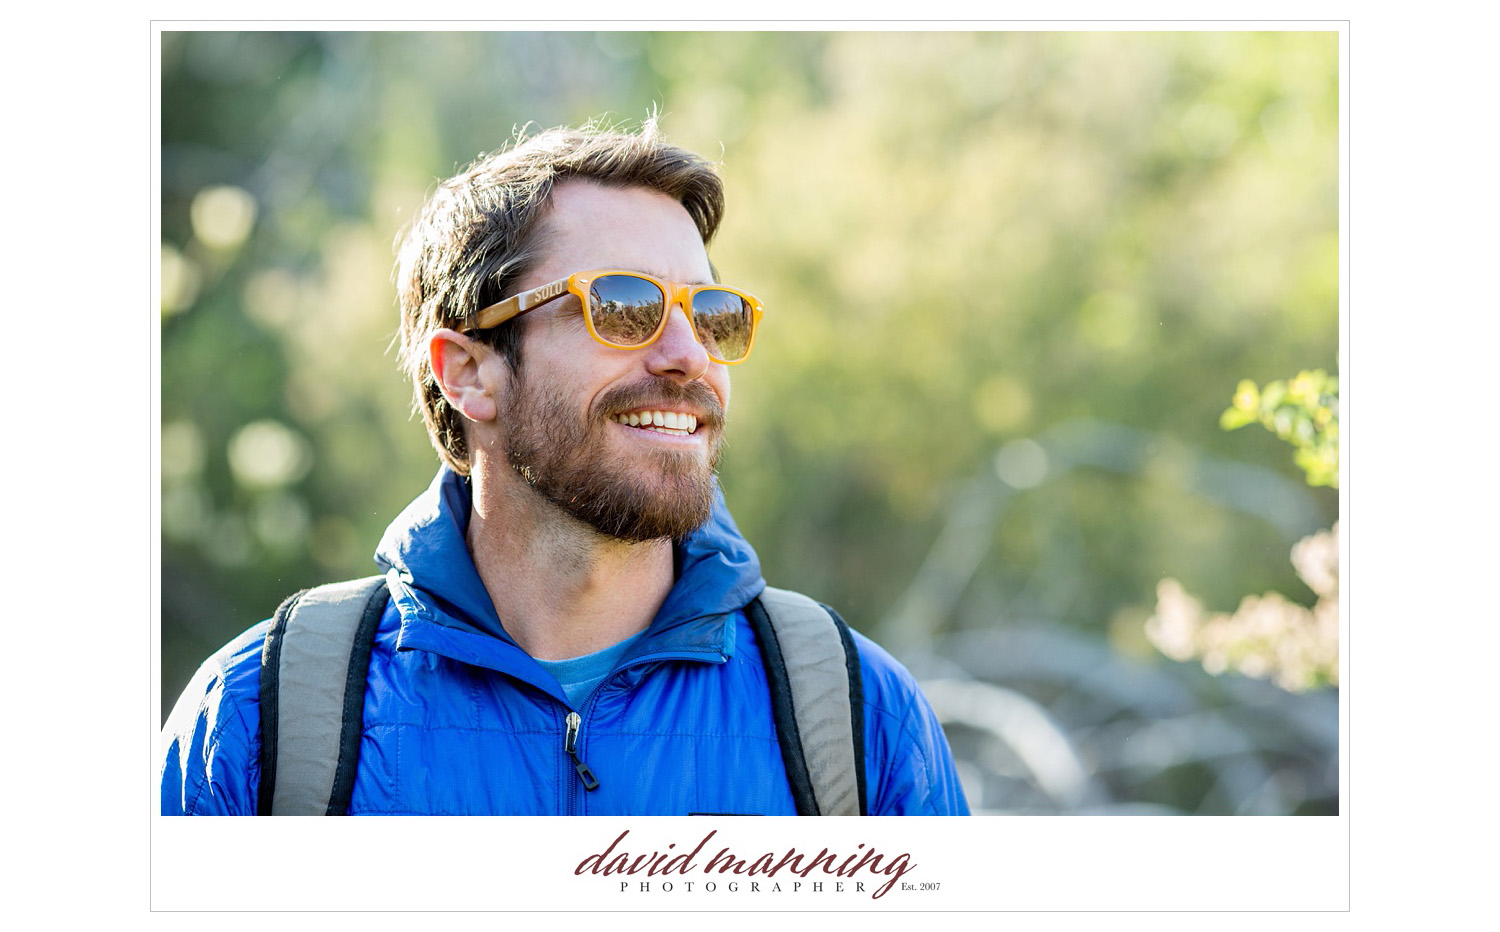 SOLO-Eyewear--Commercial-Editorial-Photos-David-Manning-Photographers-0024.jpg